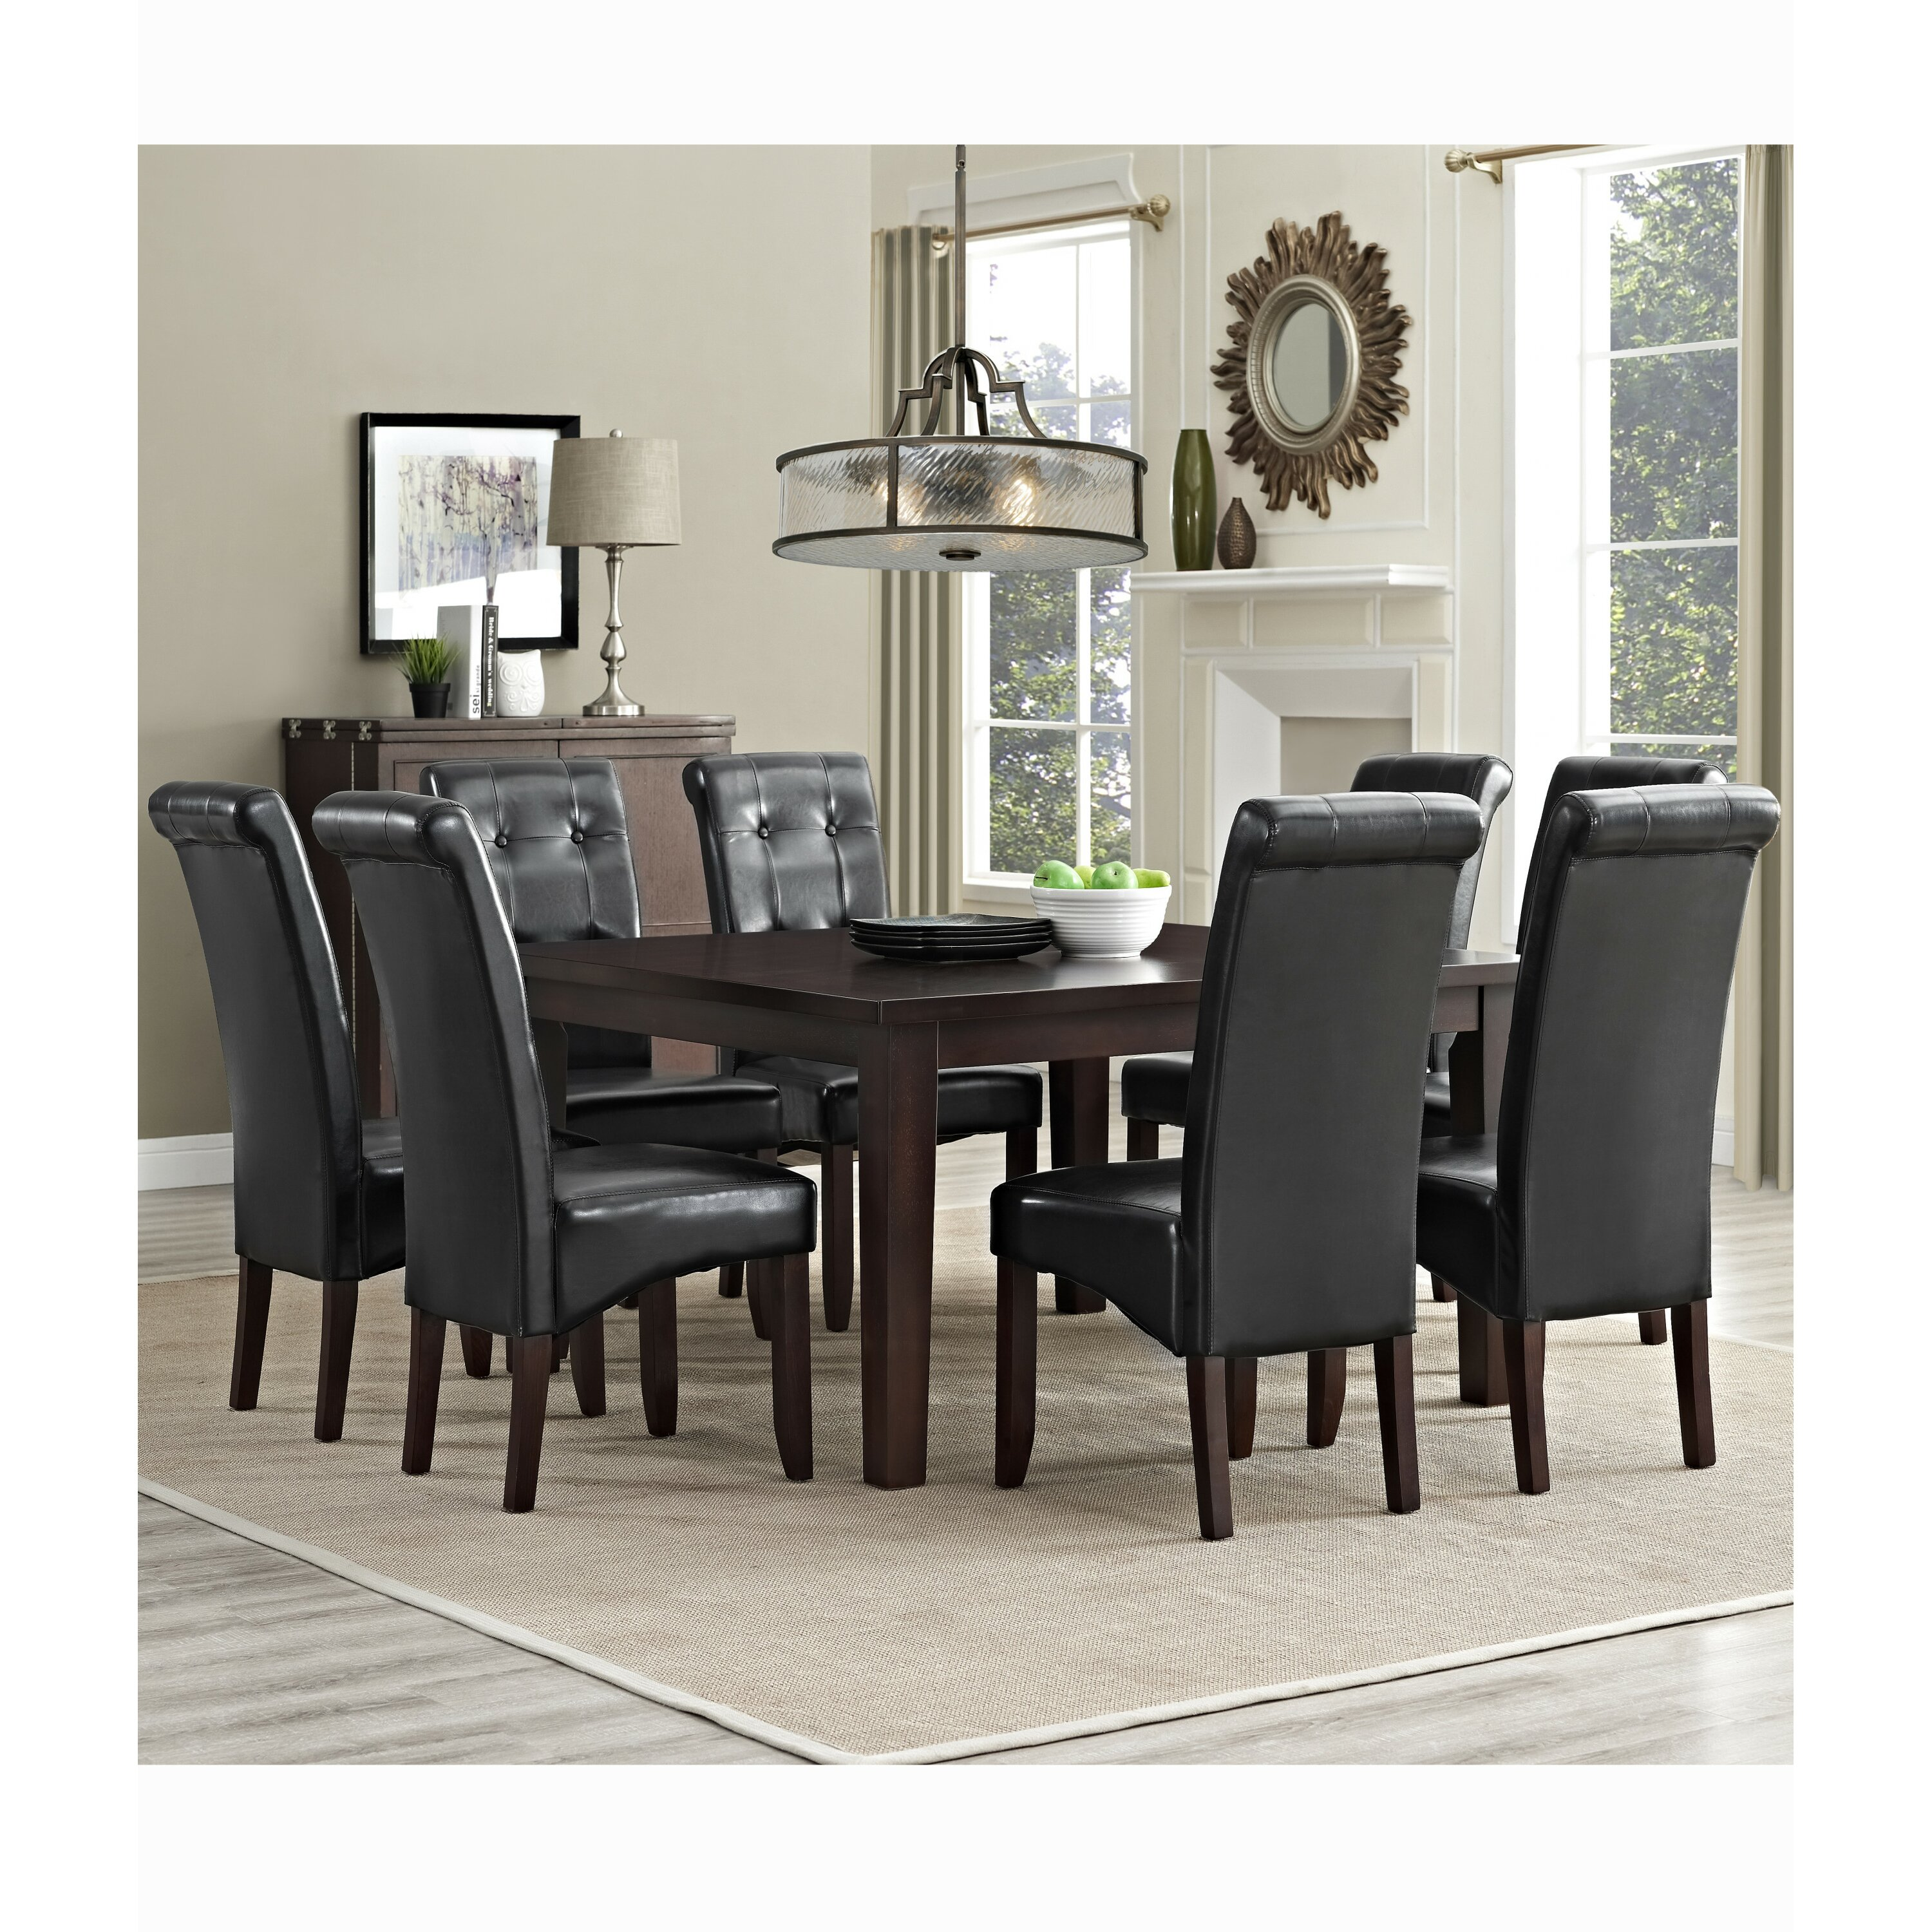 Simpli home eastwood 9 piece dining set reviews wayfair for 9 piece dining room sets square